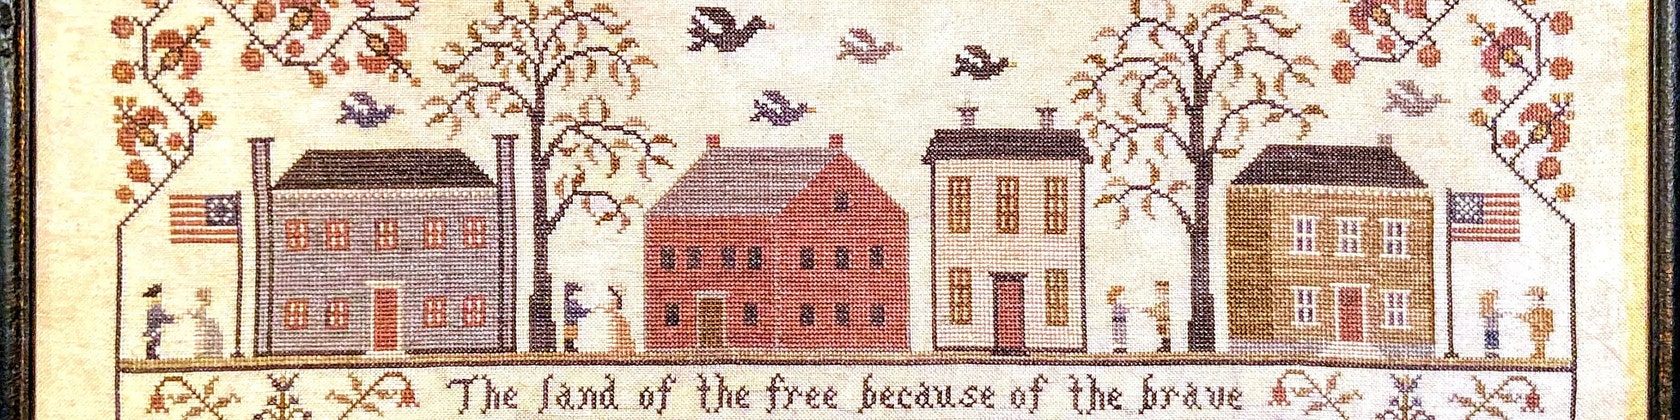 My Family Tree Willow Hill Samplings Cross Stitch Pattern